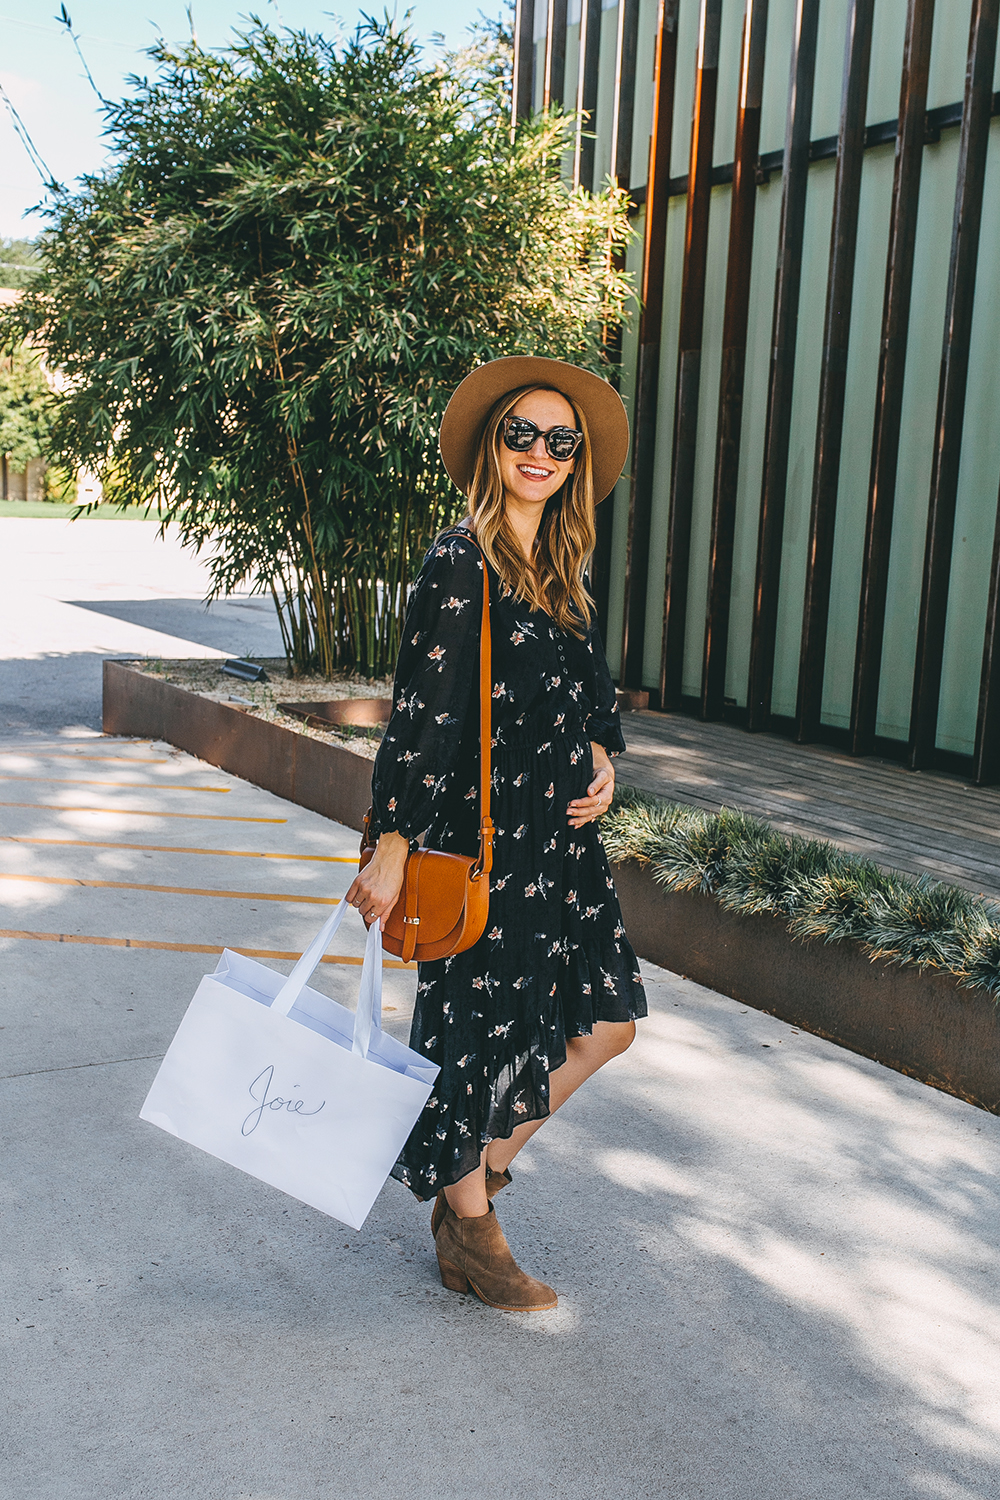 livvyland-blog-olivia-watson-austin-texas-fashion-blogger-domain-northside-joie-fall-dress-ankle-booties-outfit-7